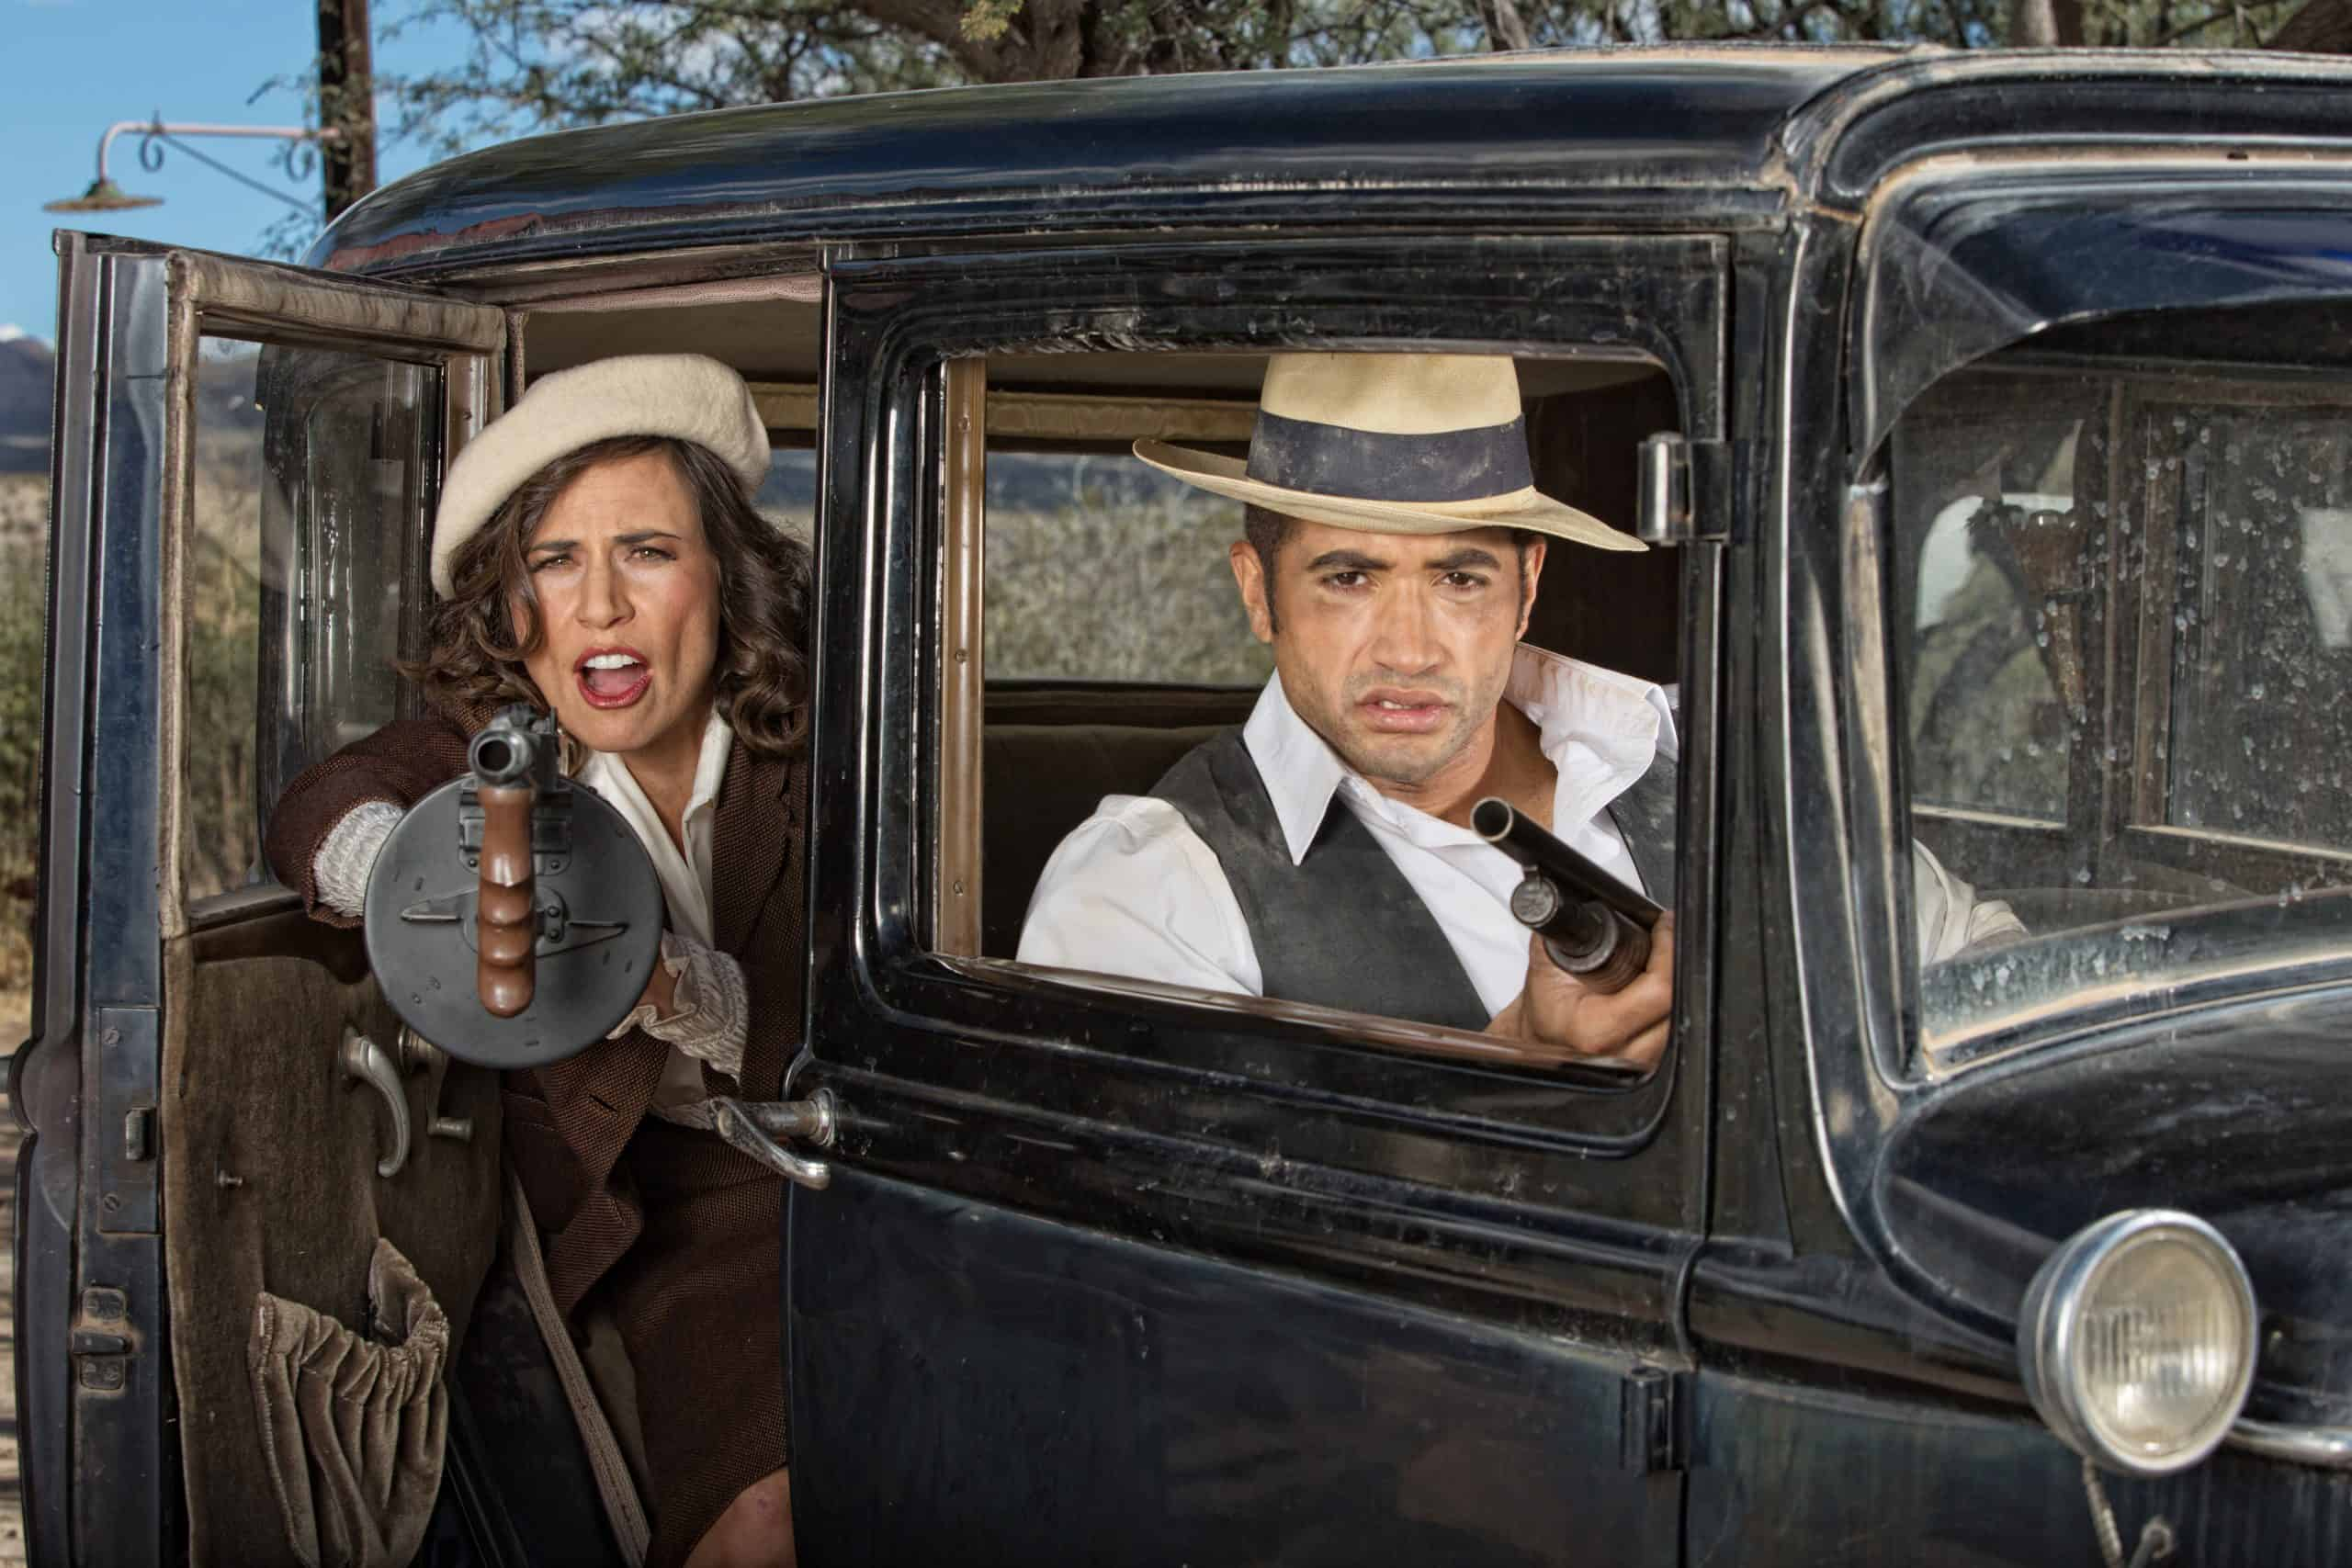 how are bonnie and clyde portrayed as heroes